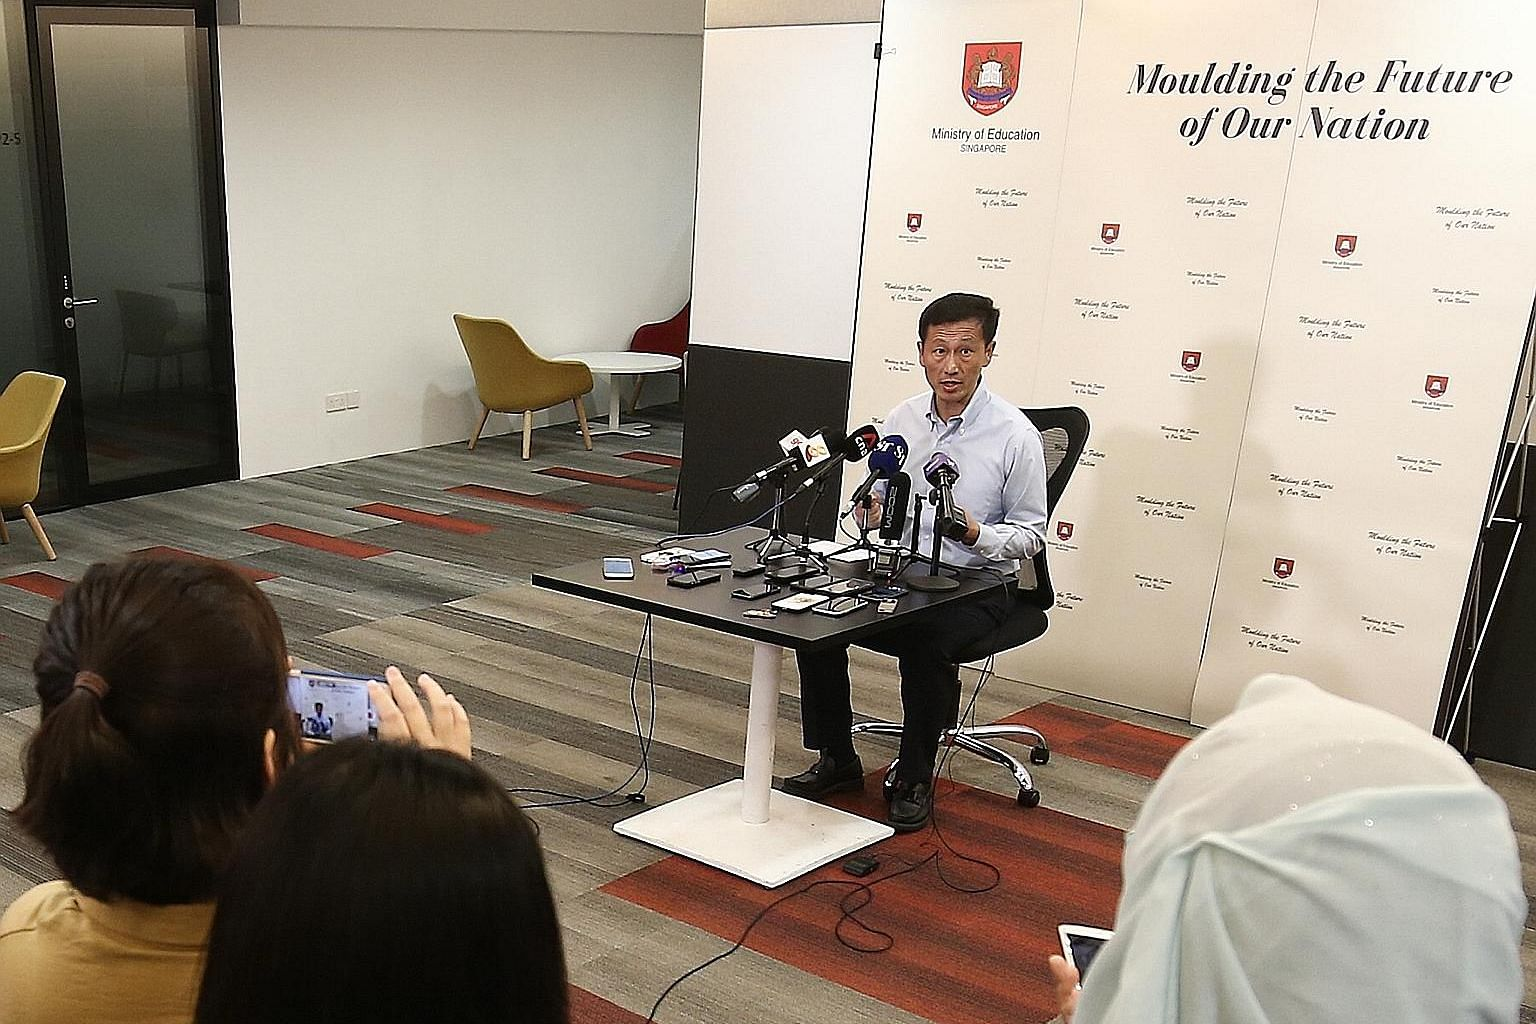 Education Minister Ong Ye Kung said during a briefing with reporters yesterday that schools will also stagger dismissal times to reduce congestion on public transport and school buses.